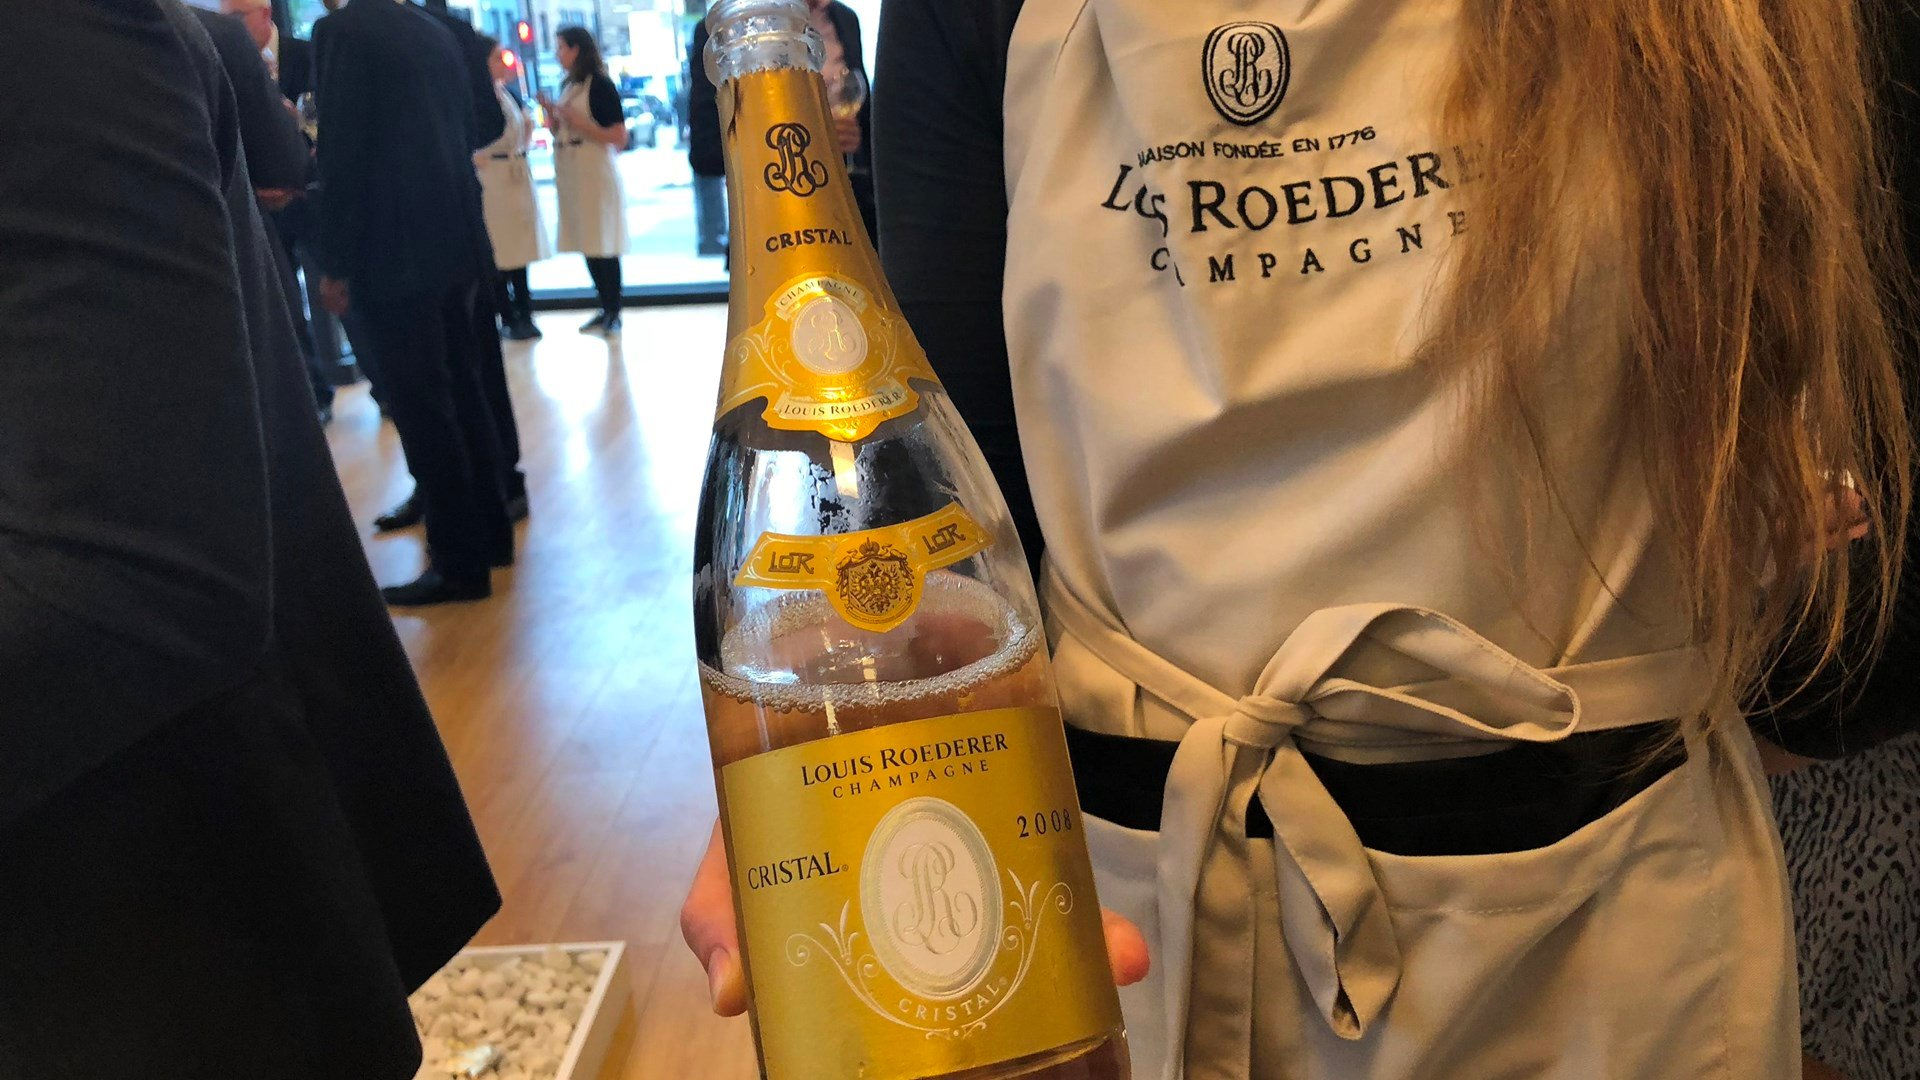 louis-roederer-cristal-2008-champagne